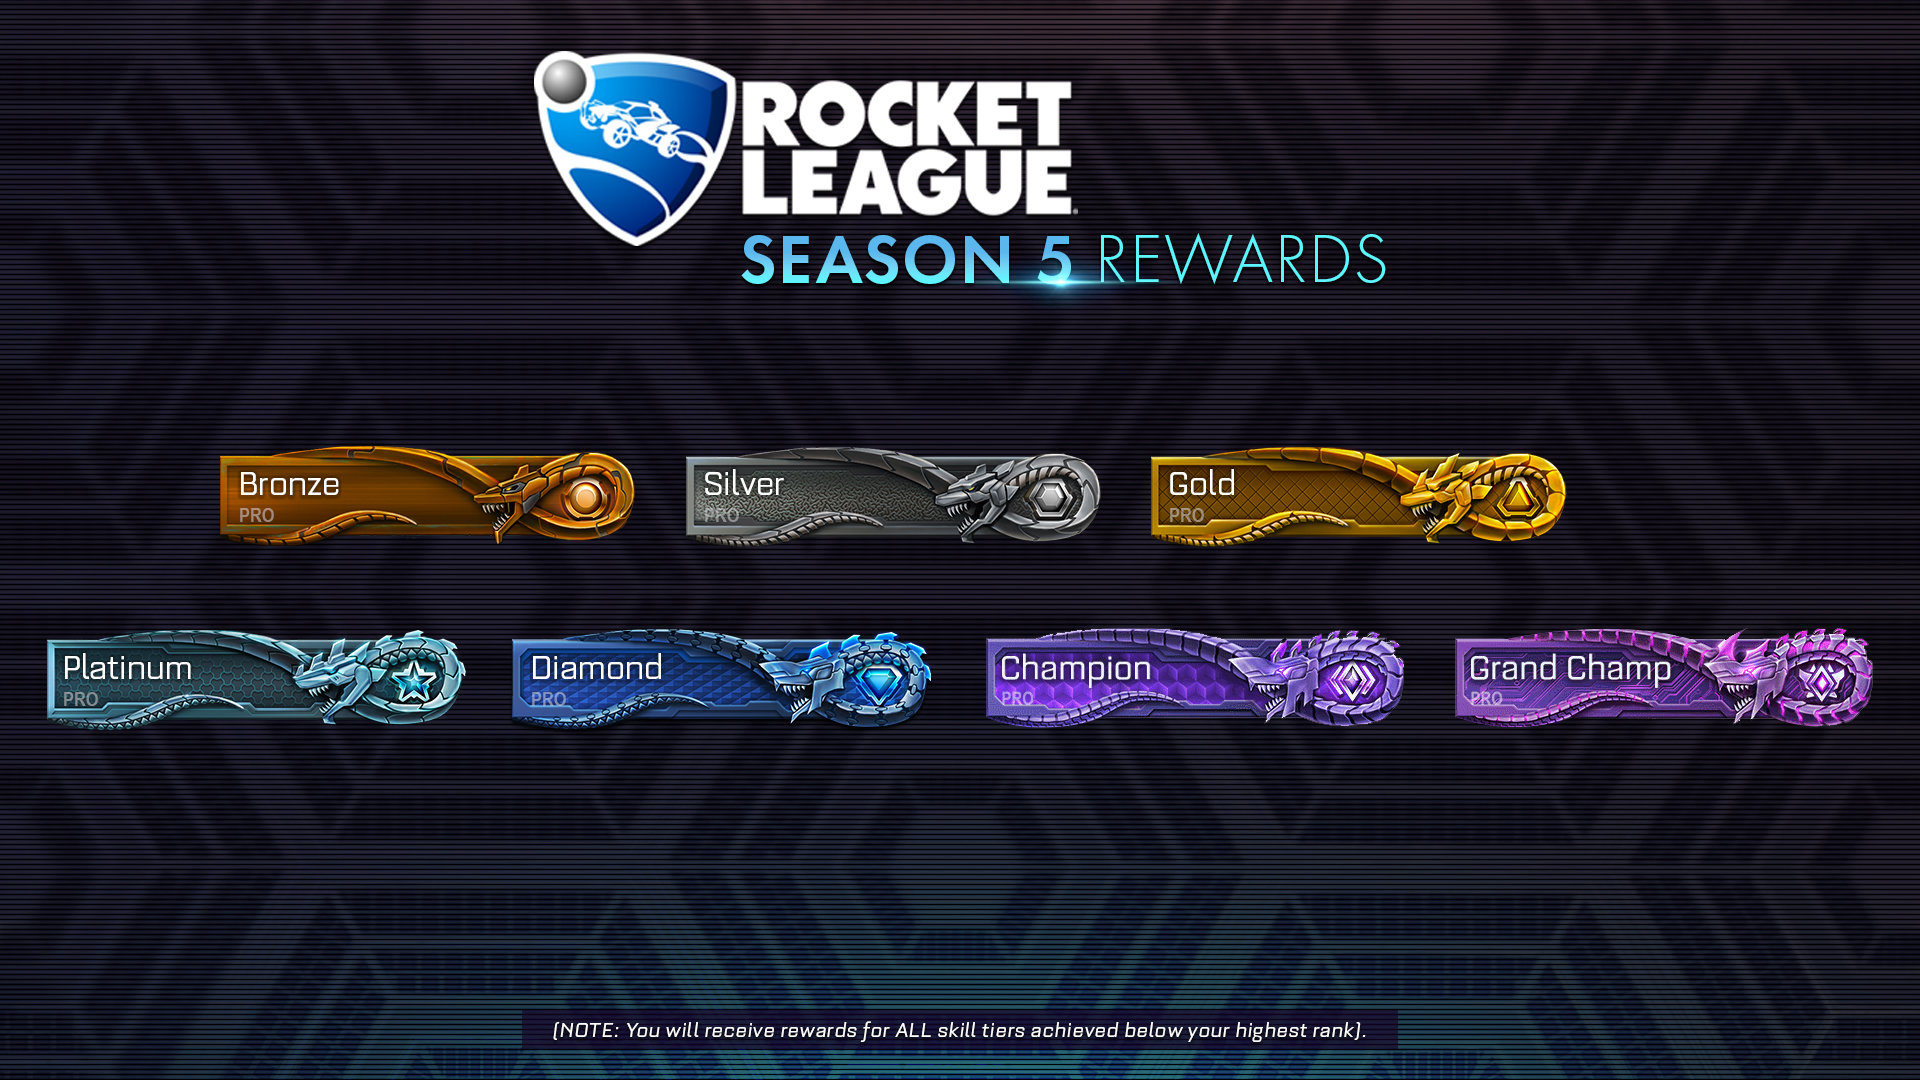 Season 5 rewards